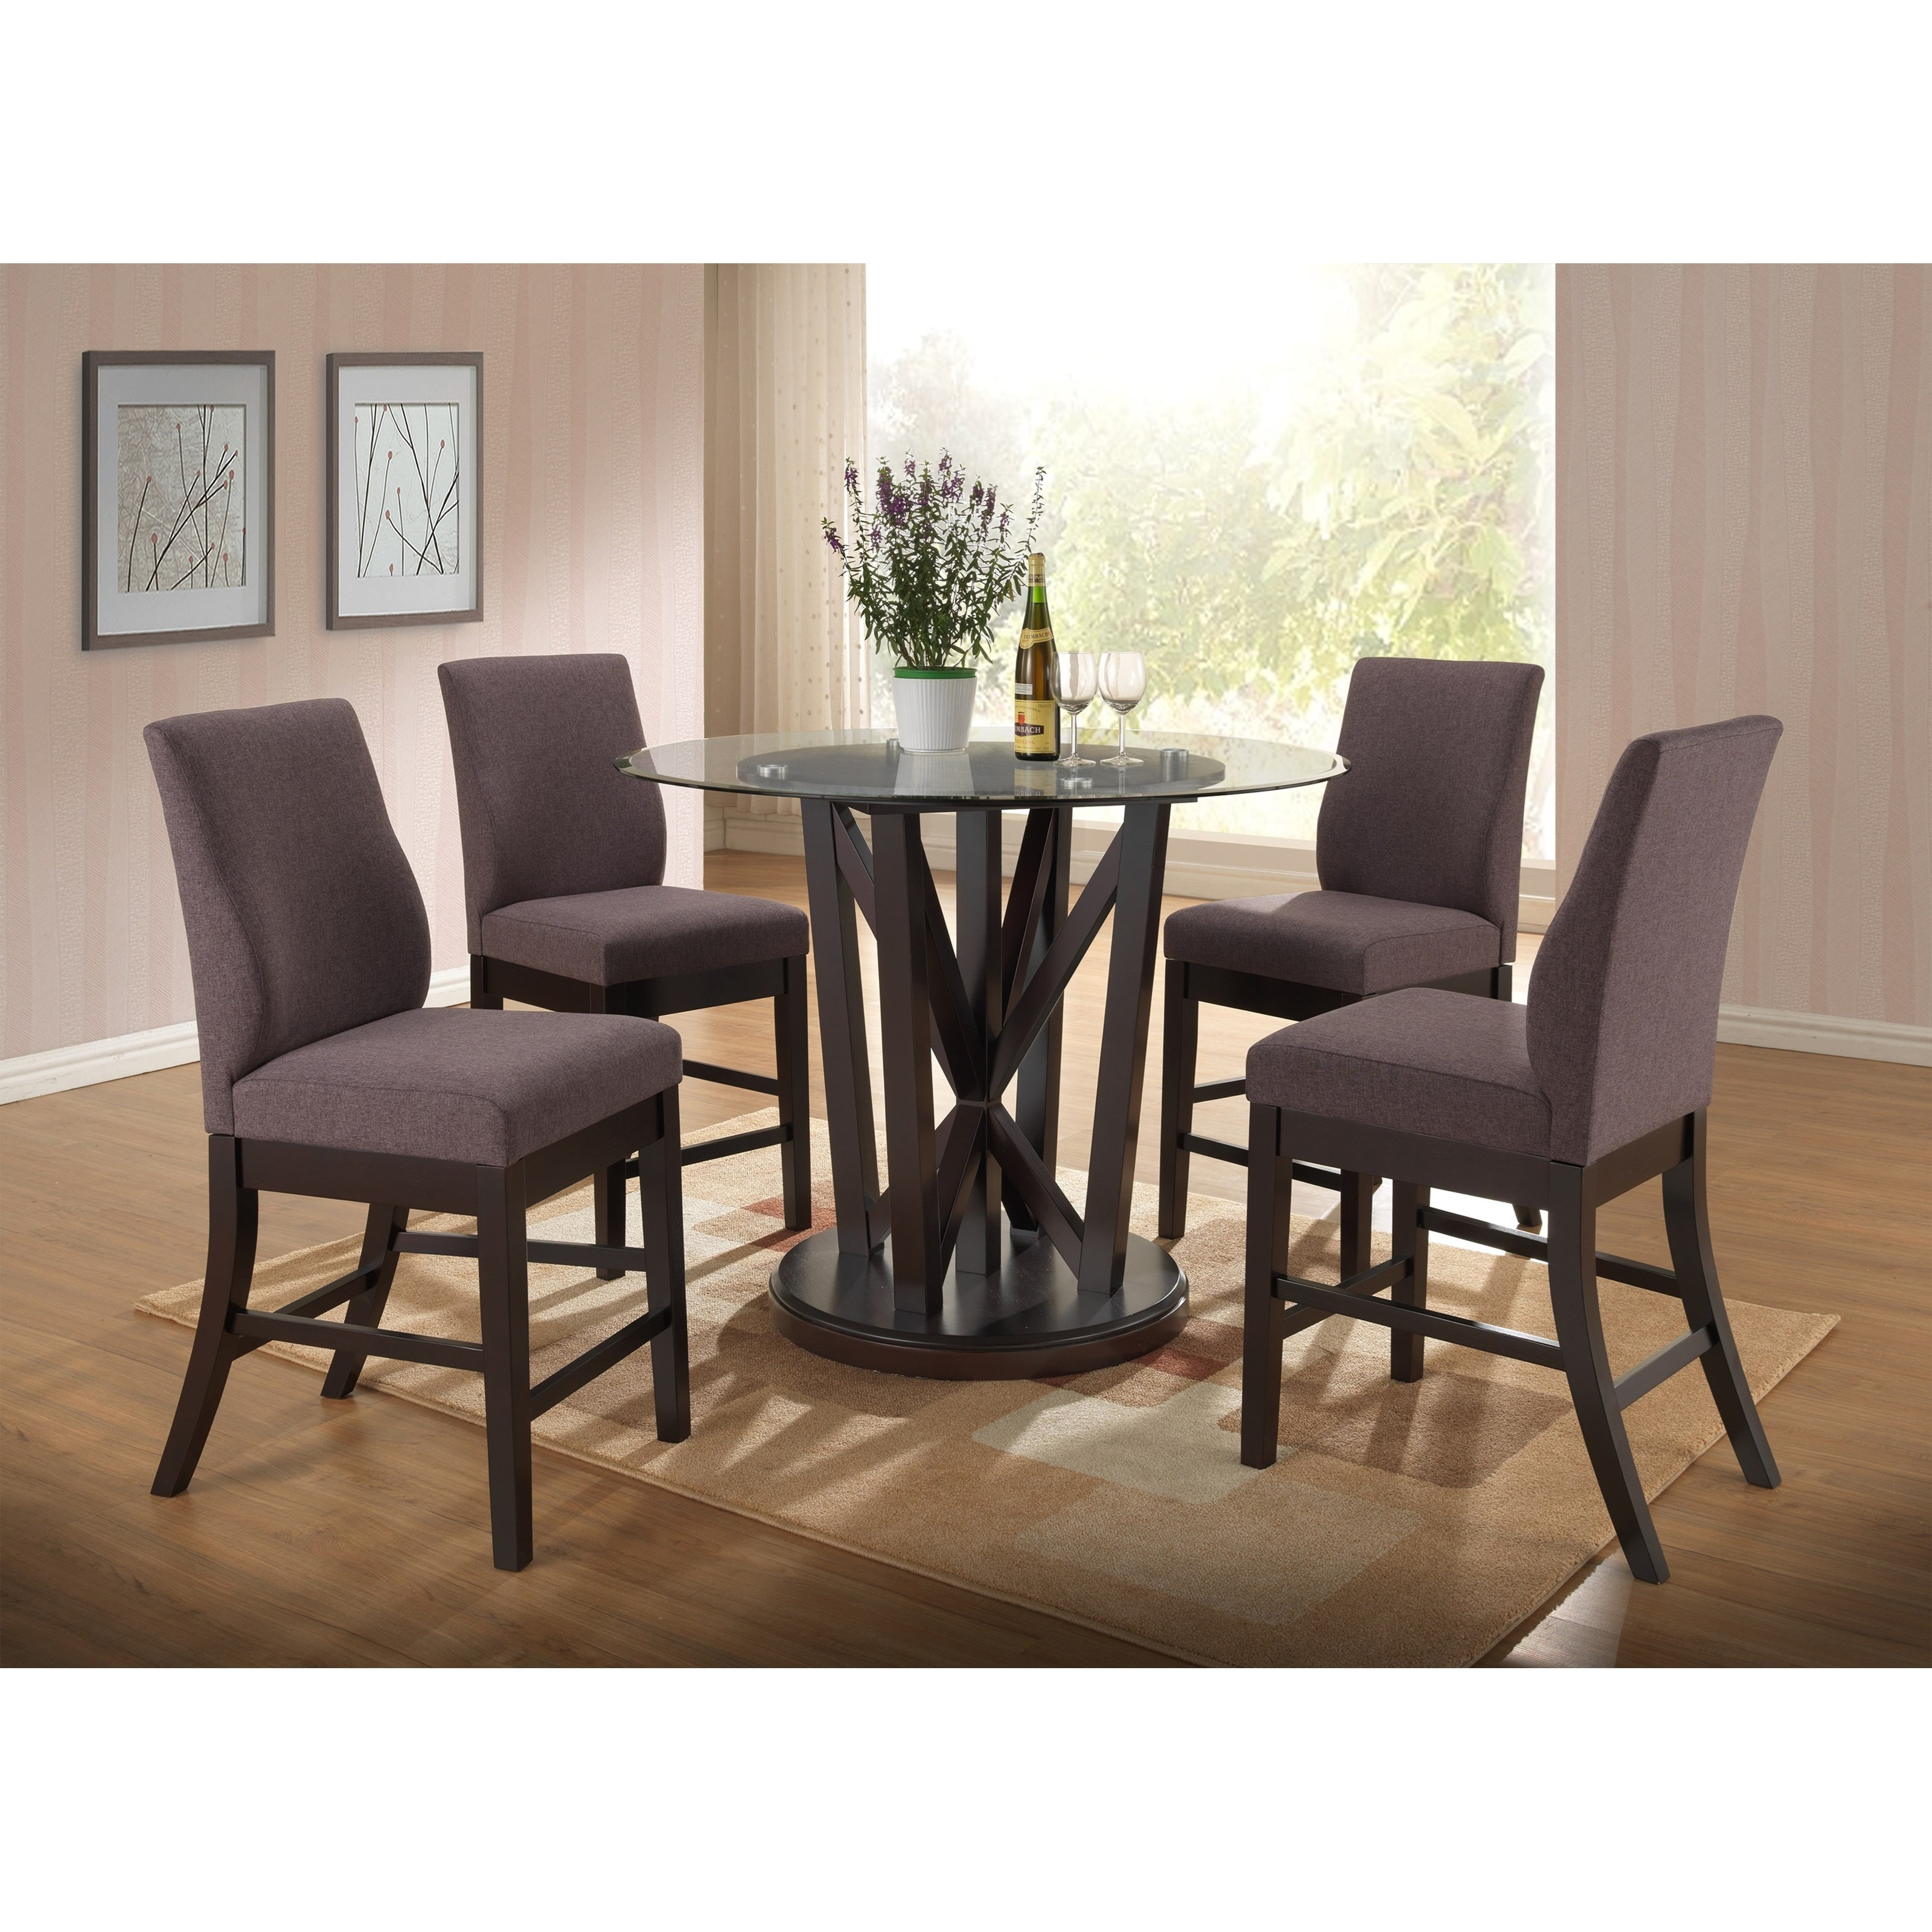 New Classic Natasha 5 Piece Round Counter Table Set - Item Number: D3972-13GT+13GB+4x22CH